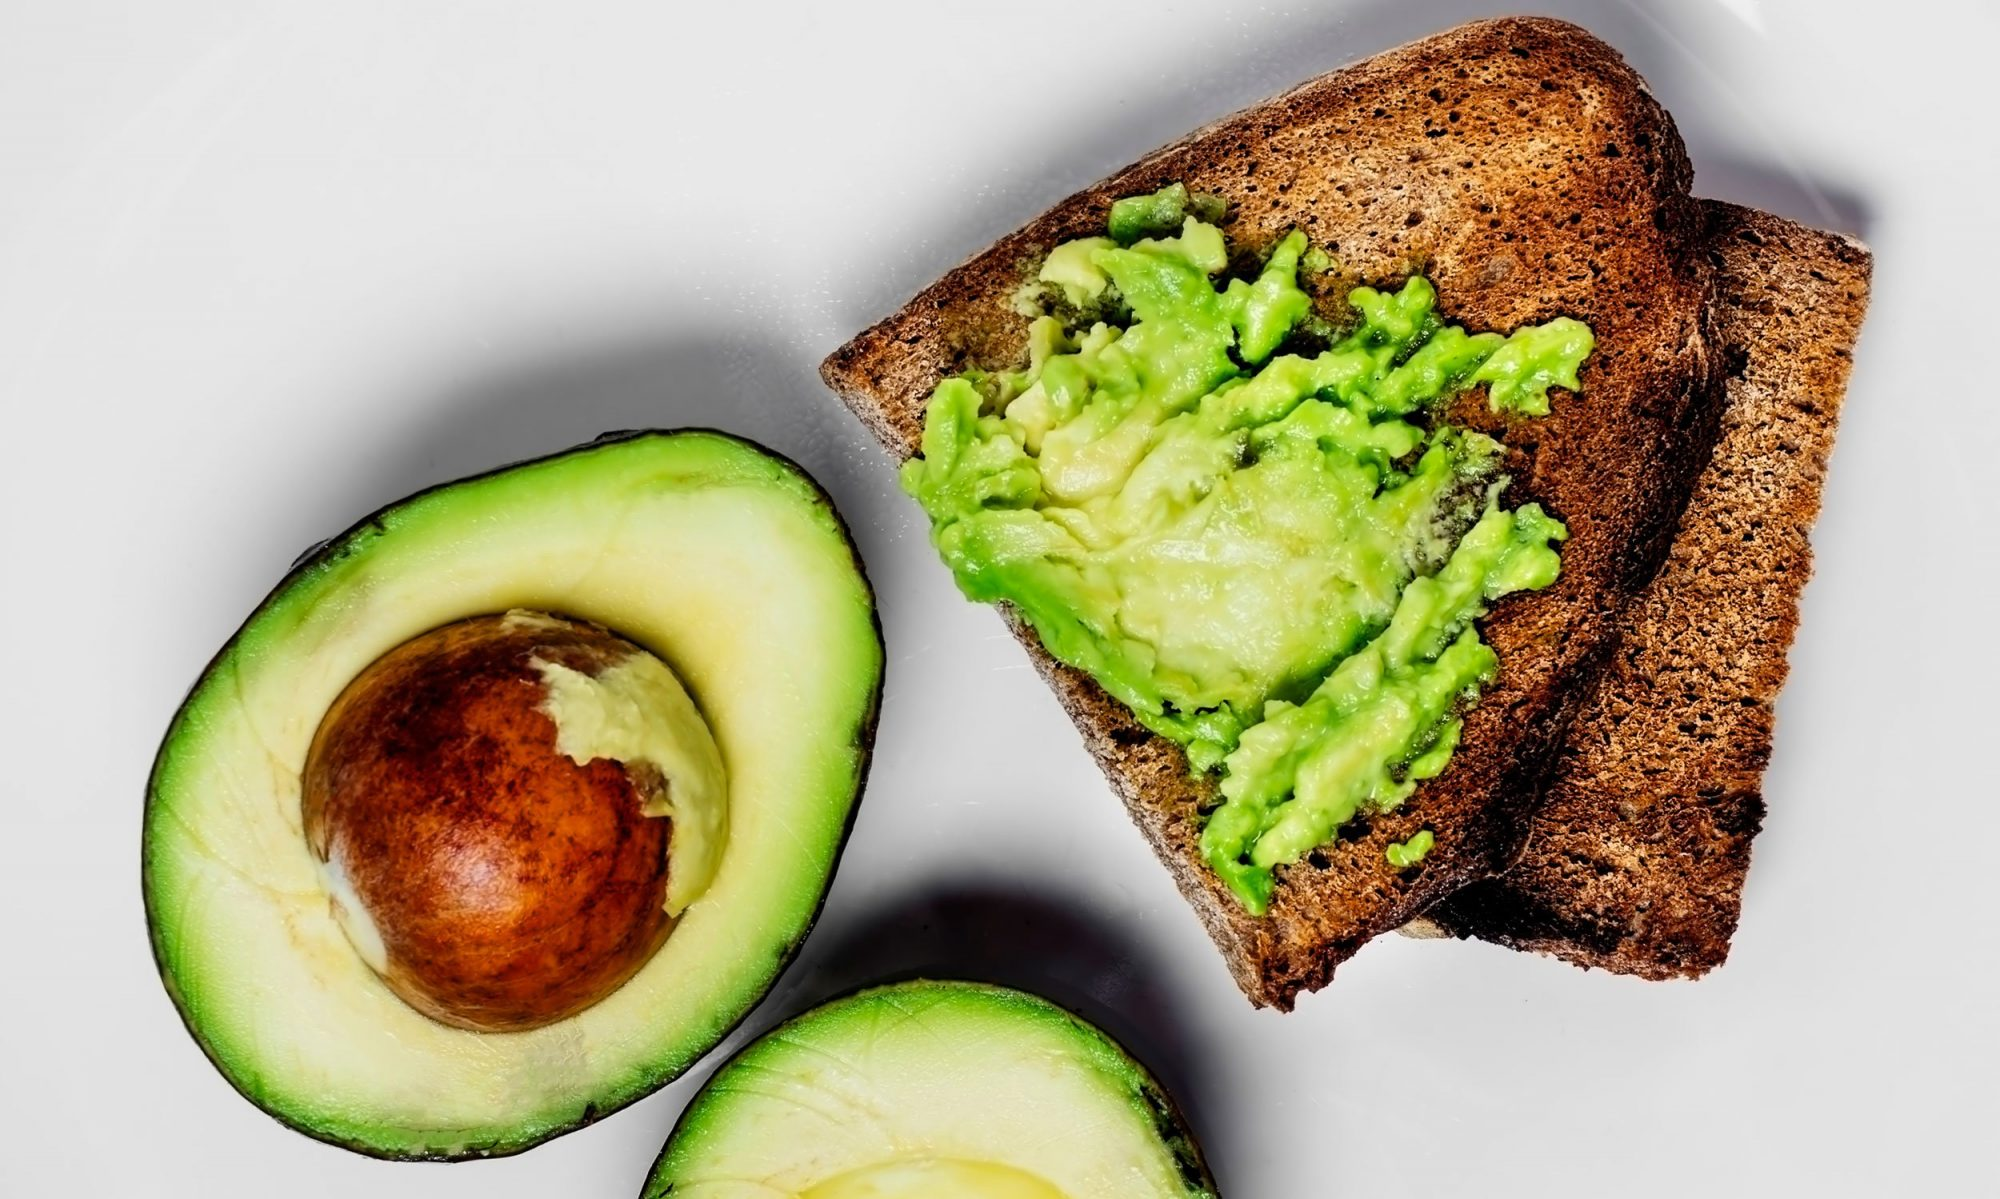 Avocados Are Getting Cheaper